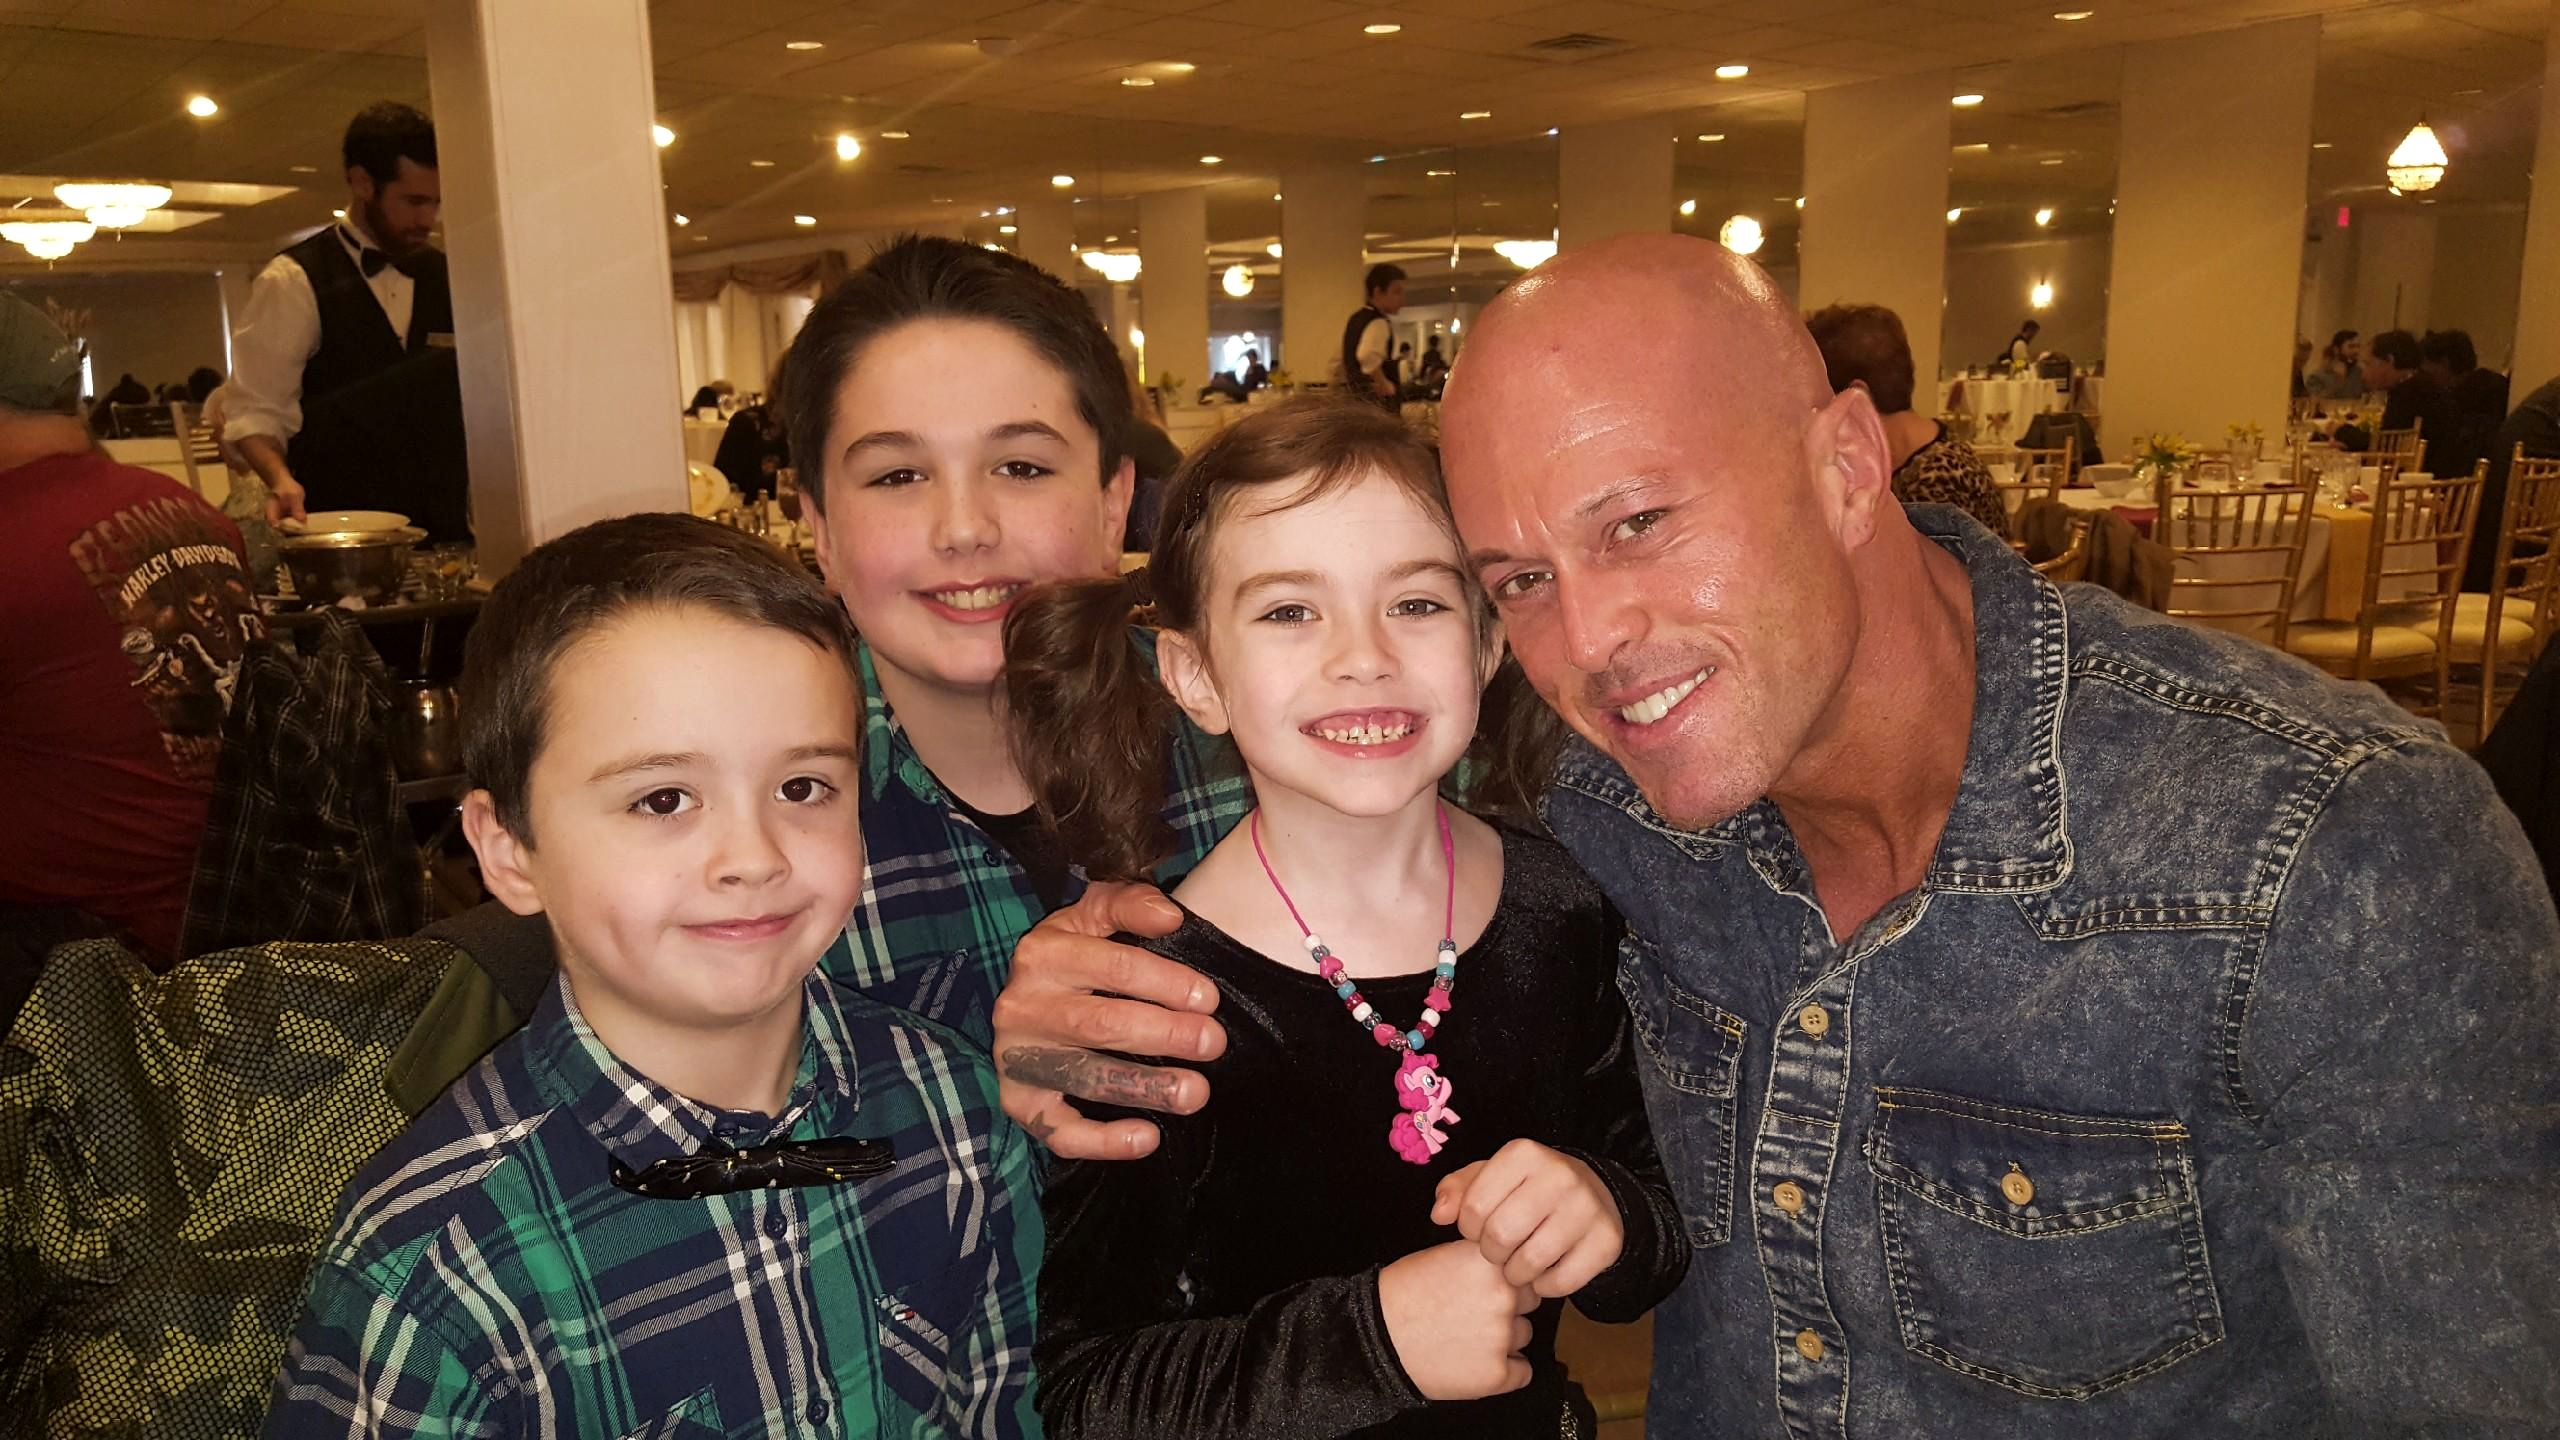 Model & Actor John Quinlan With His Children Thanksgiving 2017 #JohnQuinlan